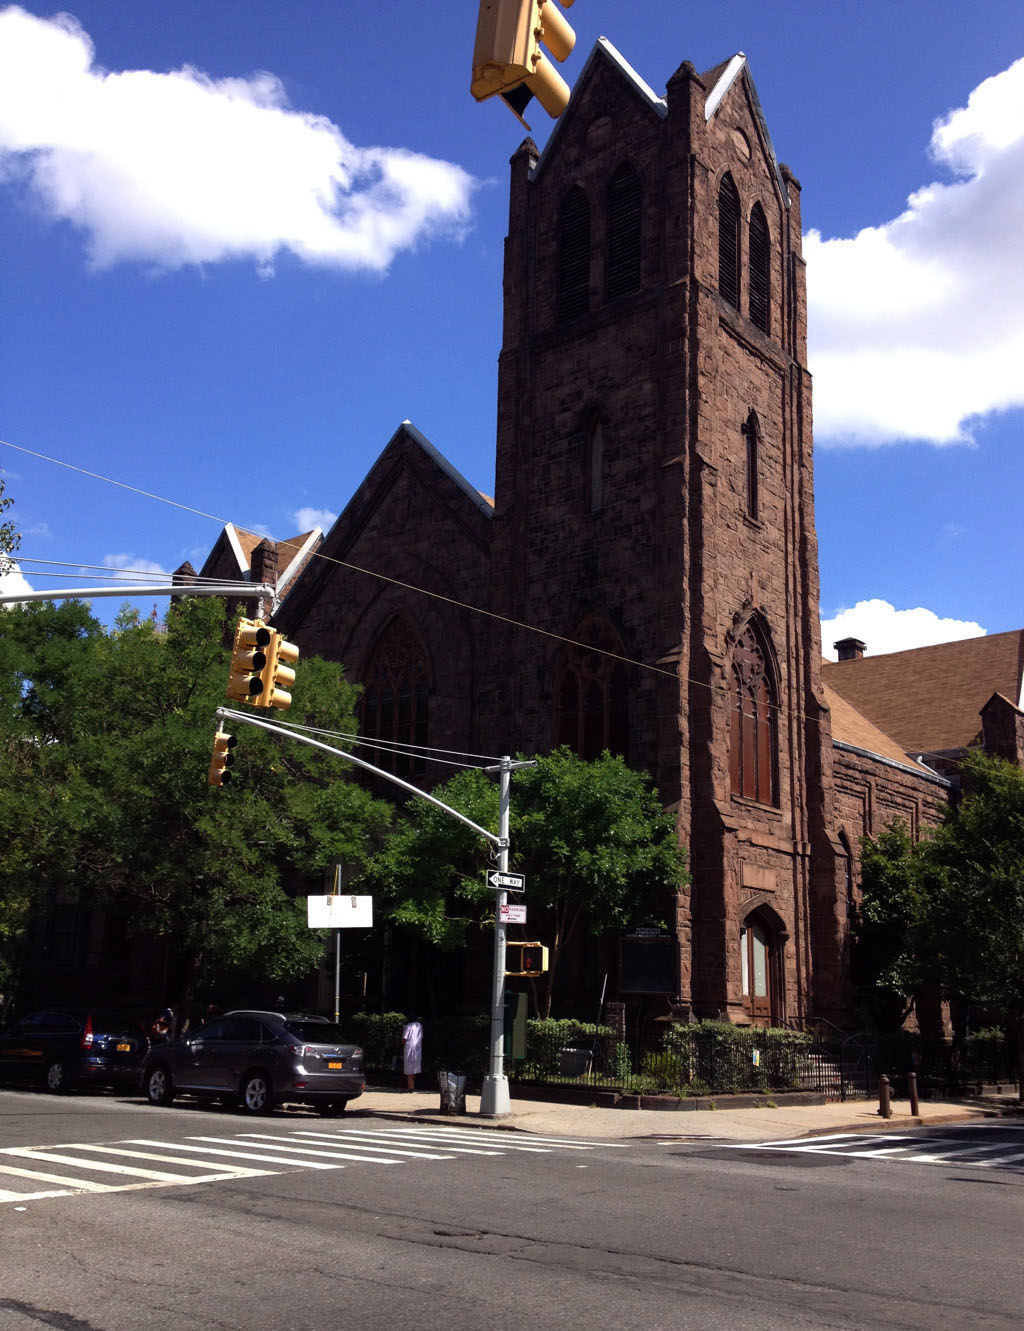 Voyage, mes incontournables pour visiter new-york, harlem, messe gospel, 'Eglise Metropolitan Community United Methodist Church